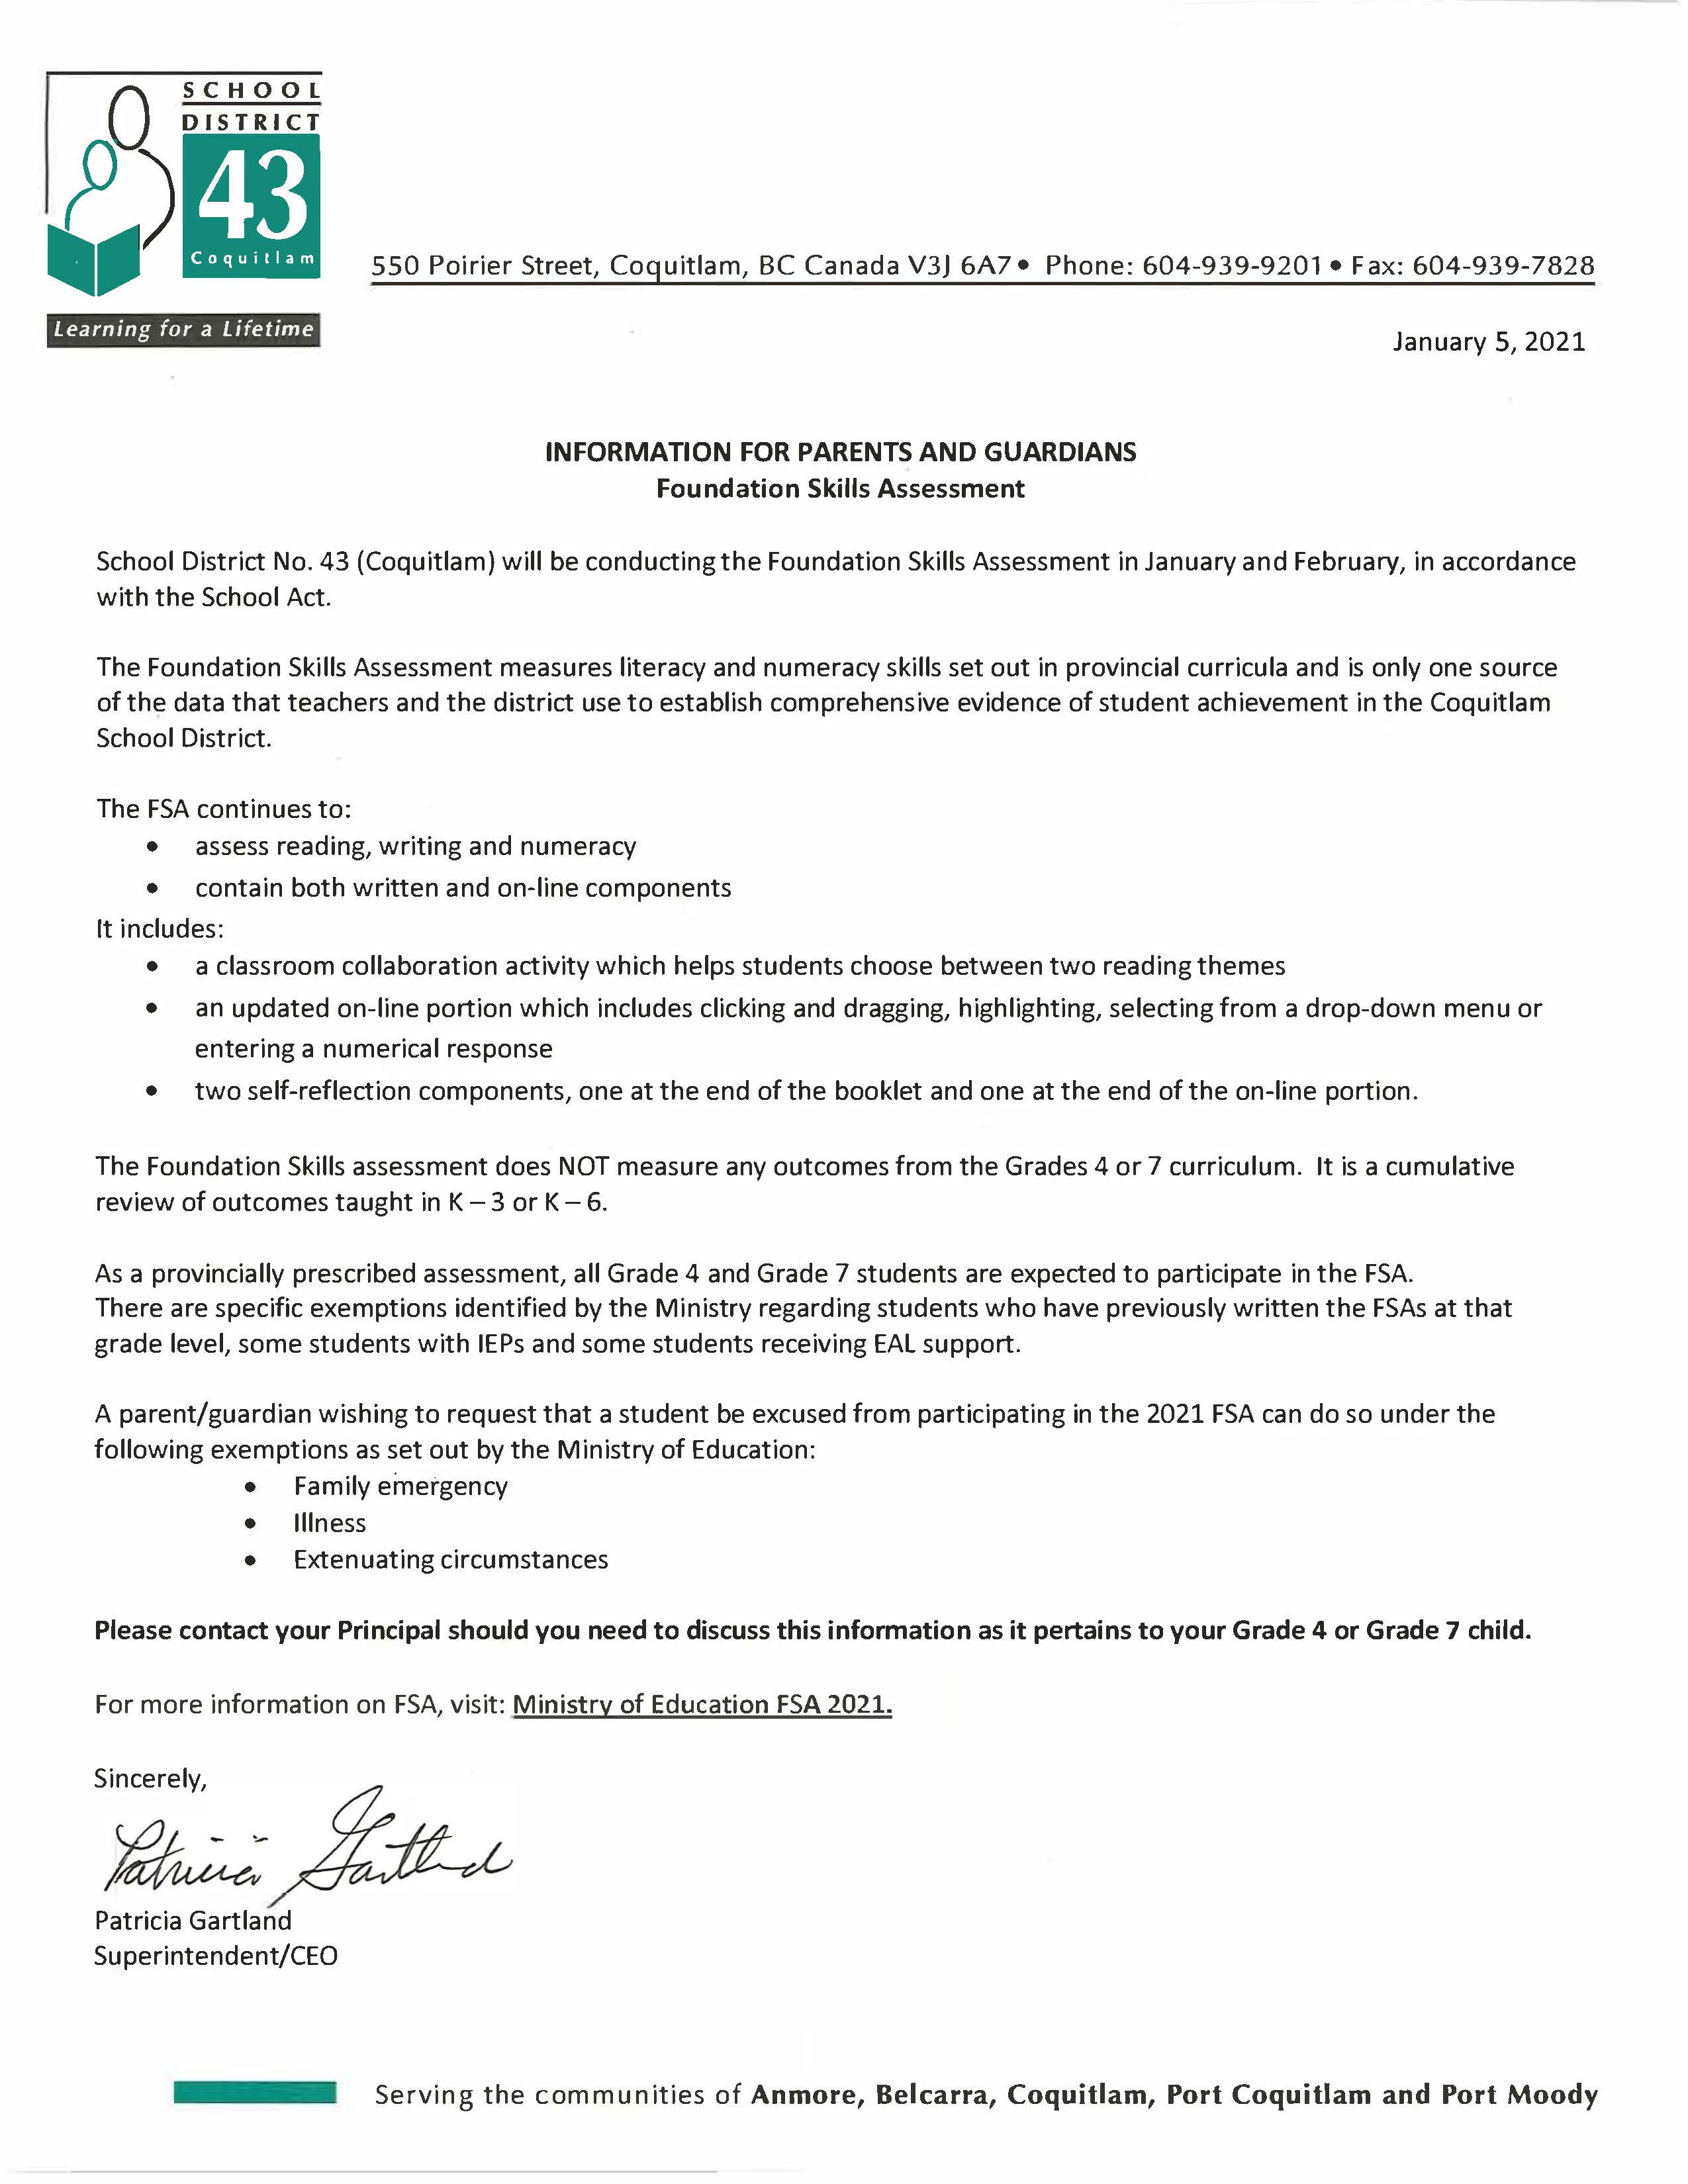 FSA Letter from Superintendent January 2021.jpg